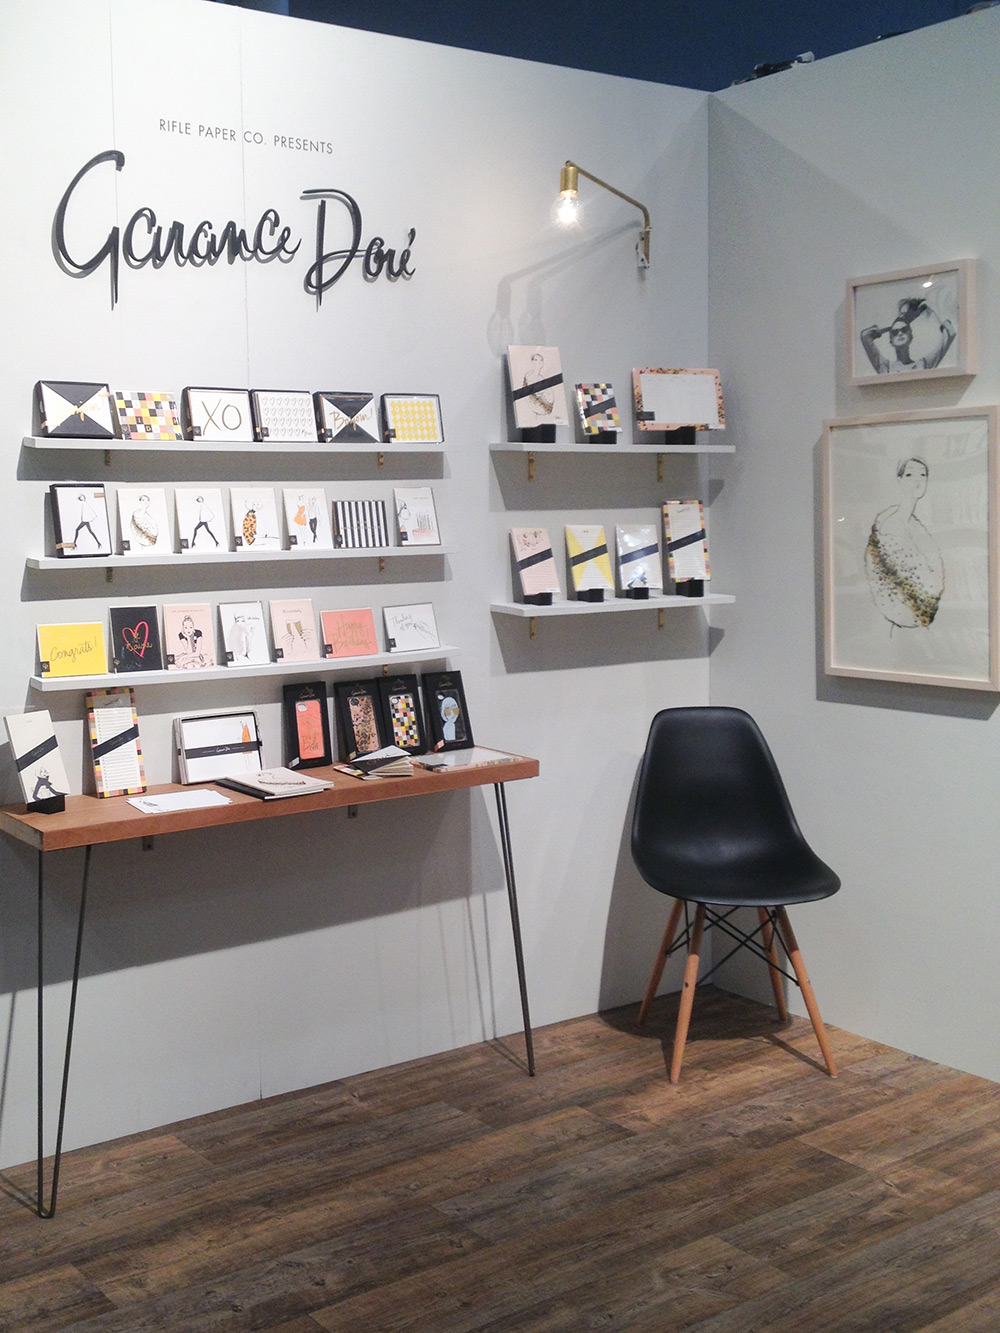 Checking out the   Garance Dore   collection from Rifle Paper Co.